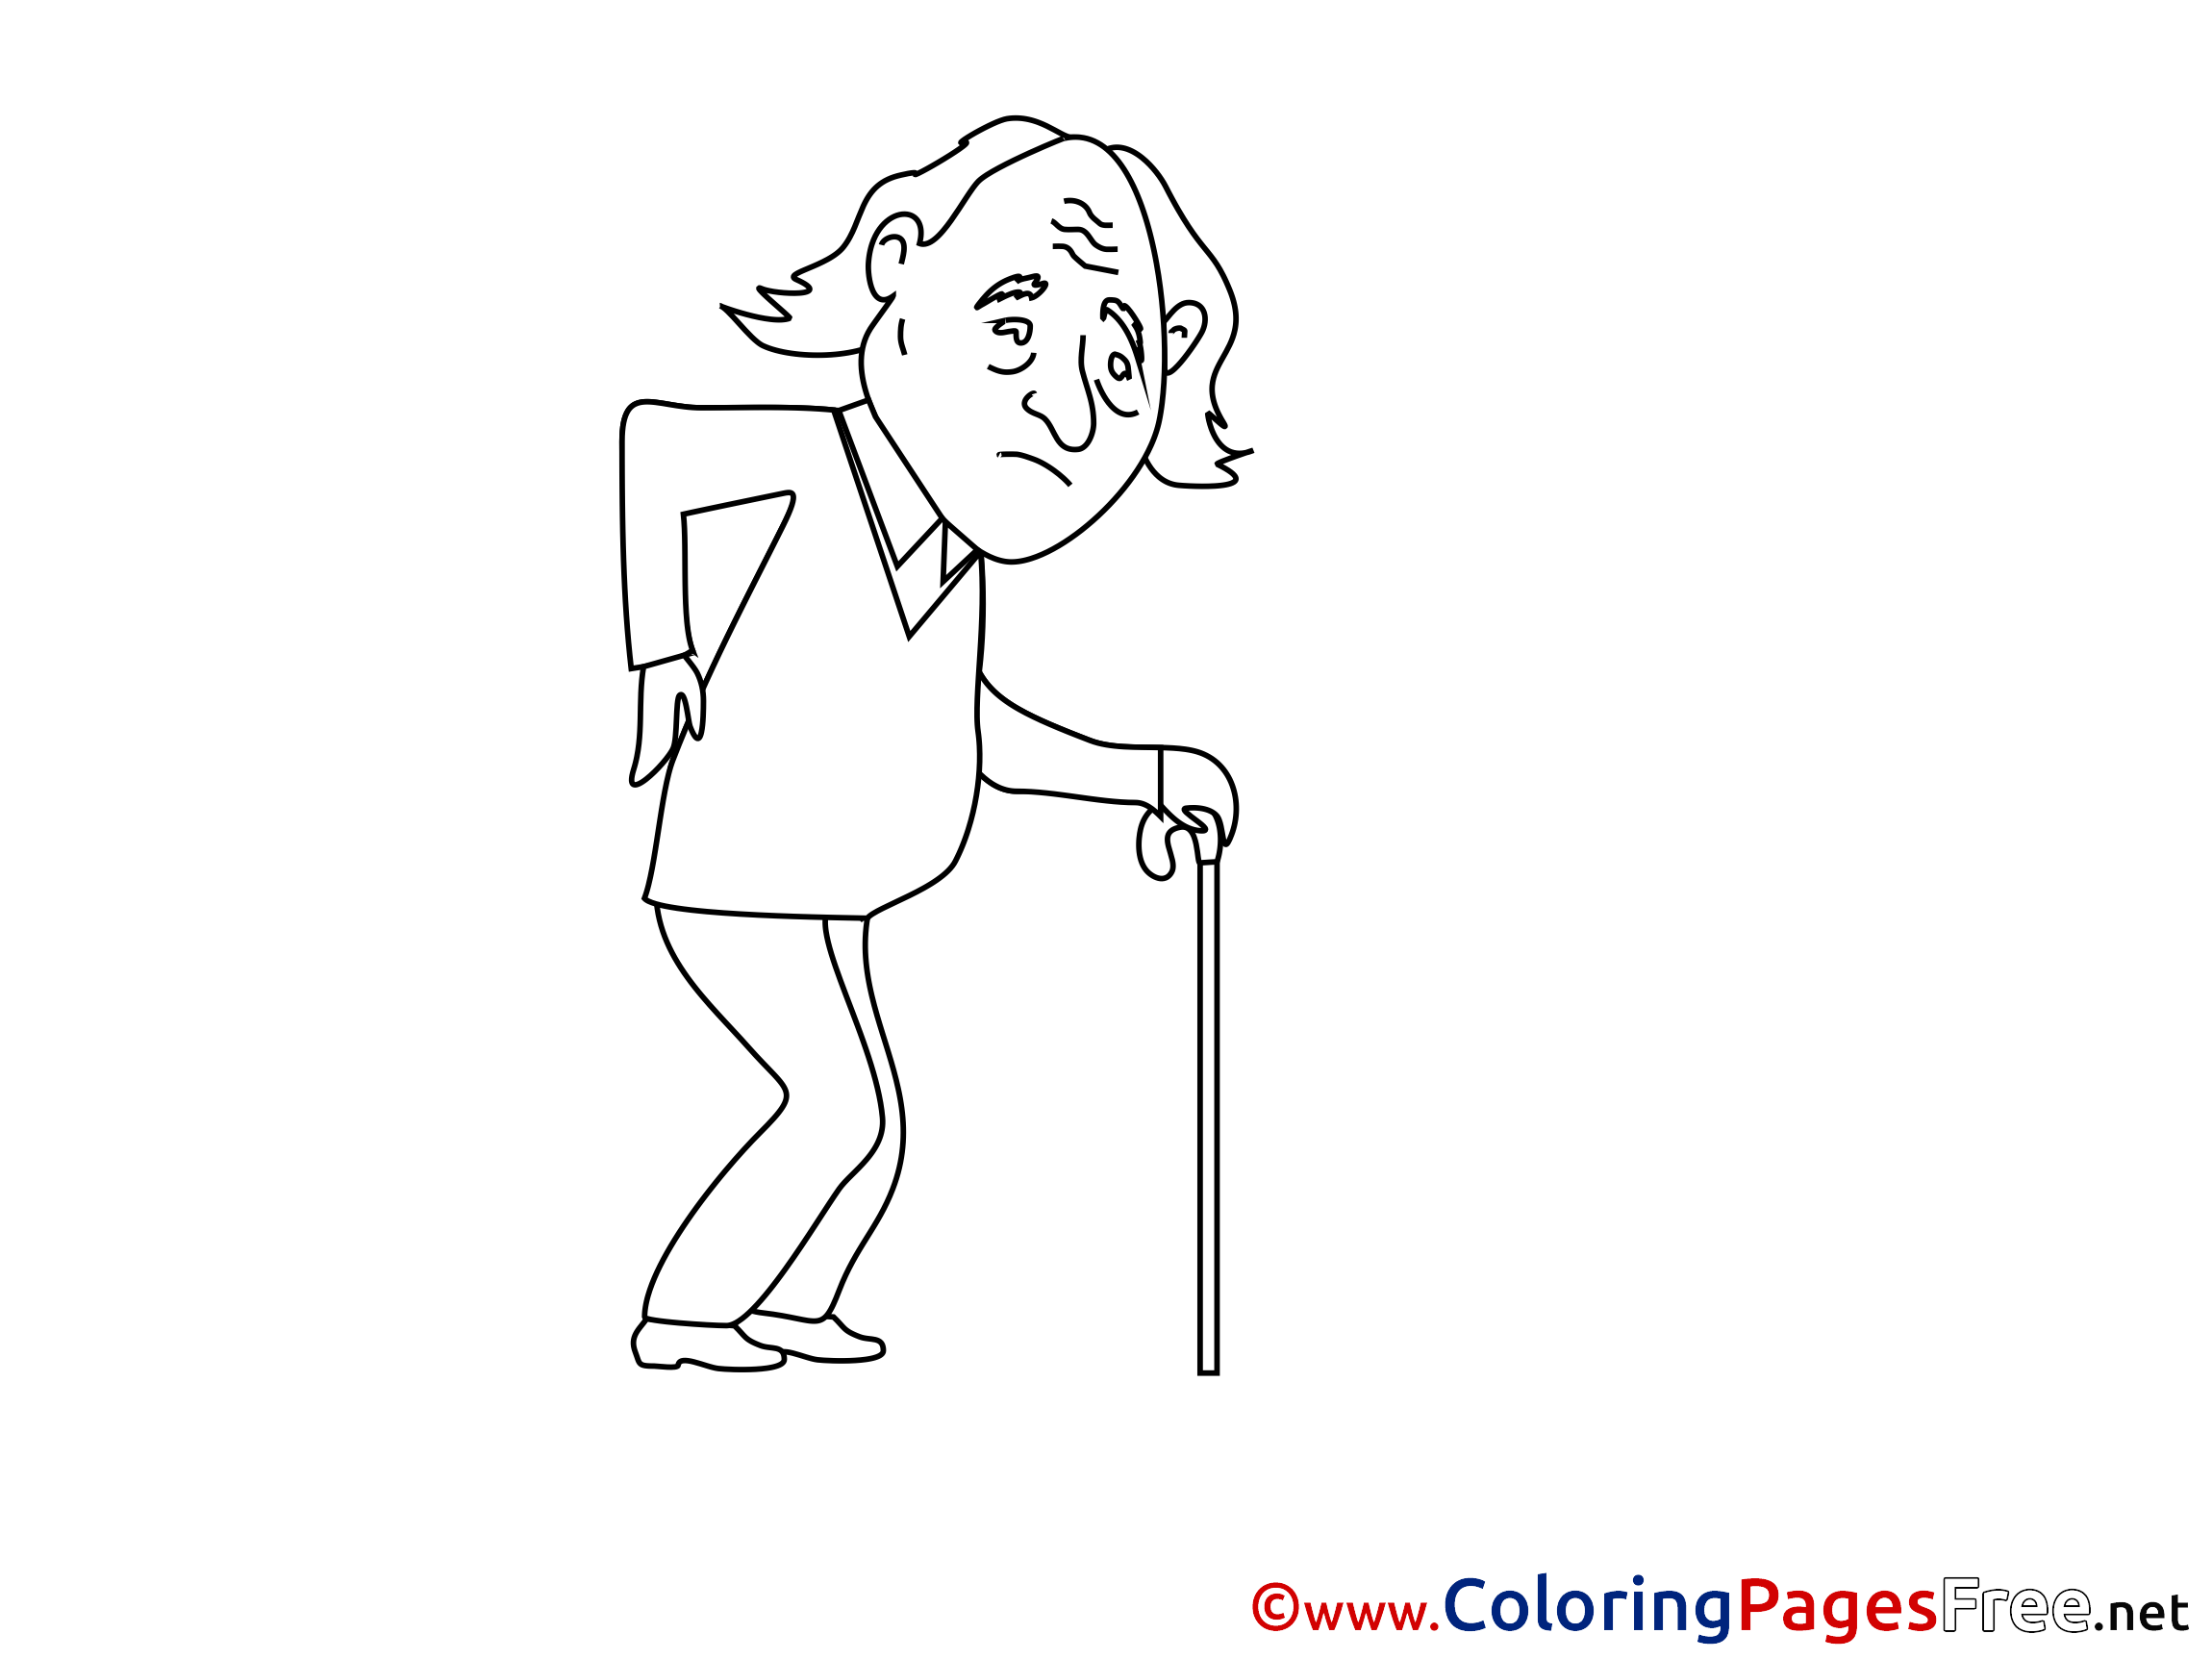 Old Man Colouring Sheet Download Free Coloring Sheets Color Coloring Pages